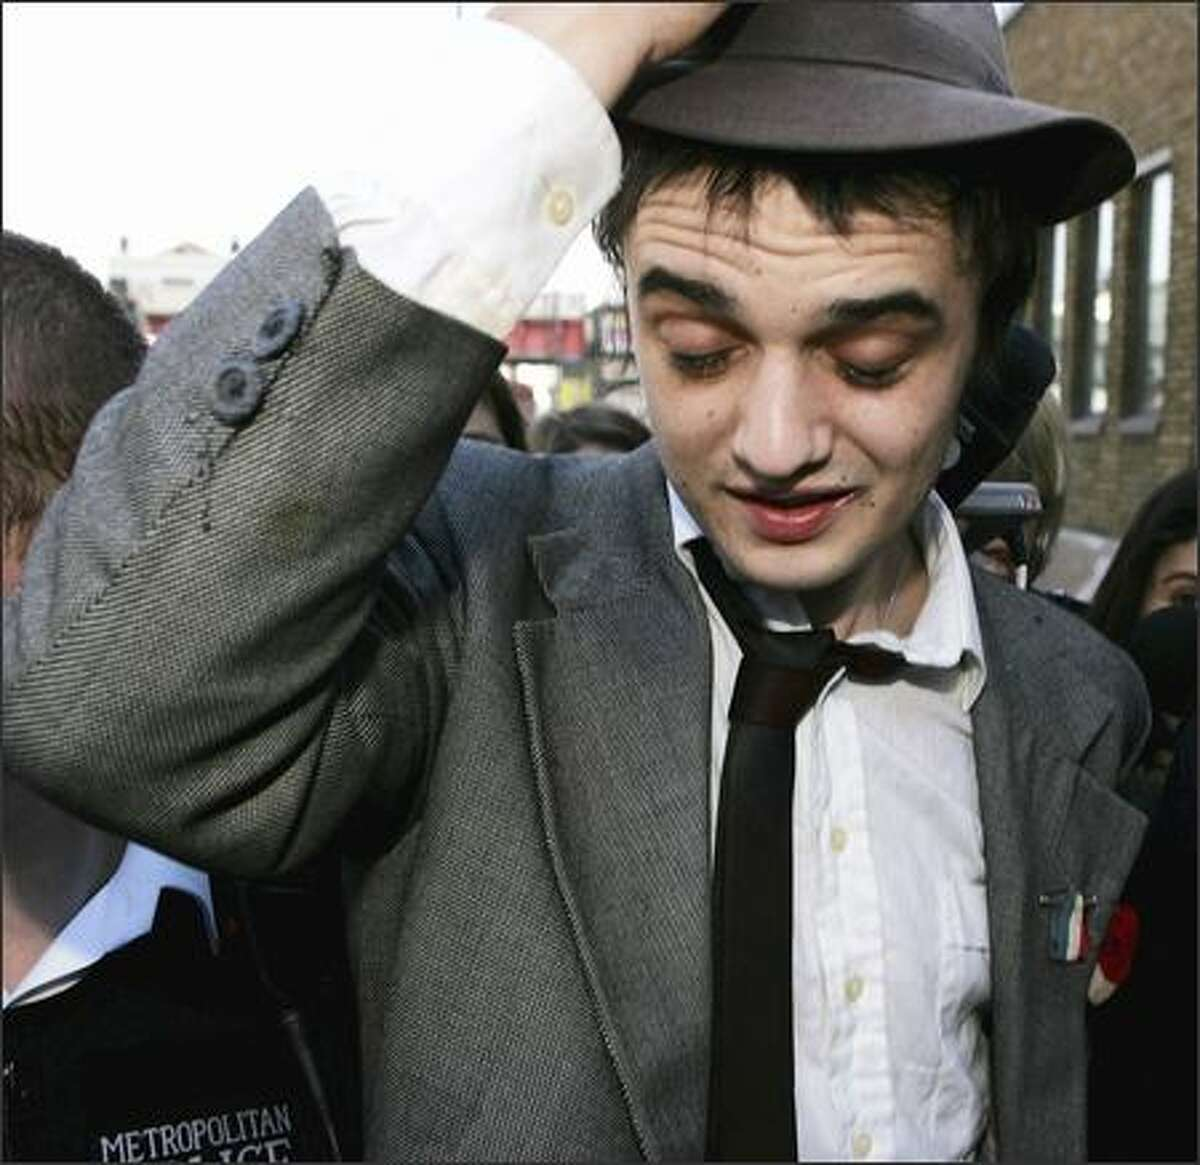 Forget the baby. Pete Doherty's life is a shambles. The U.K.'s The Sun reports that the Babyshambles lead singer shot a syringe of what looked like blood into the camera lens during an interview with MTV News. Cameramen are worried they may have been infected from the splatter. Somebody, drop a net over this guy.